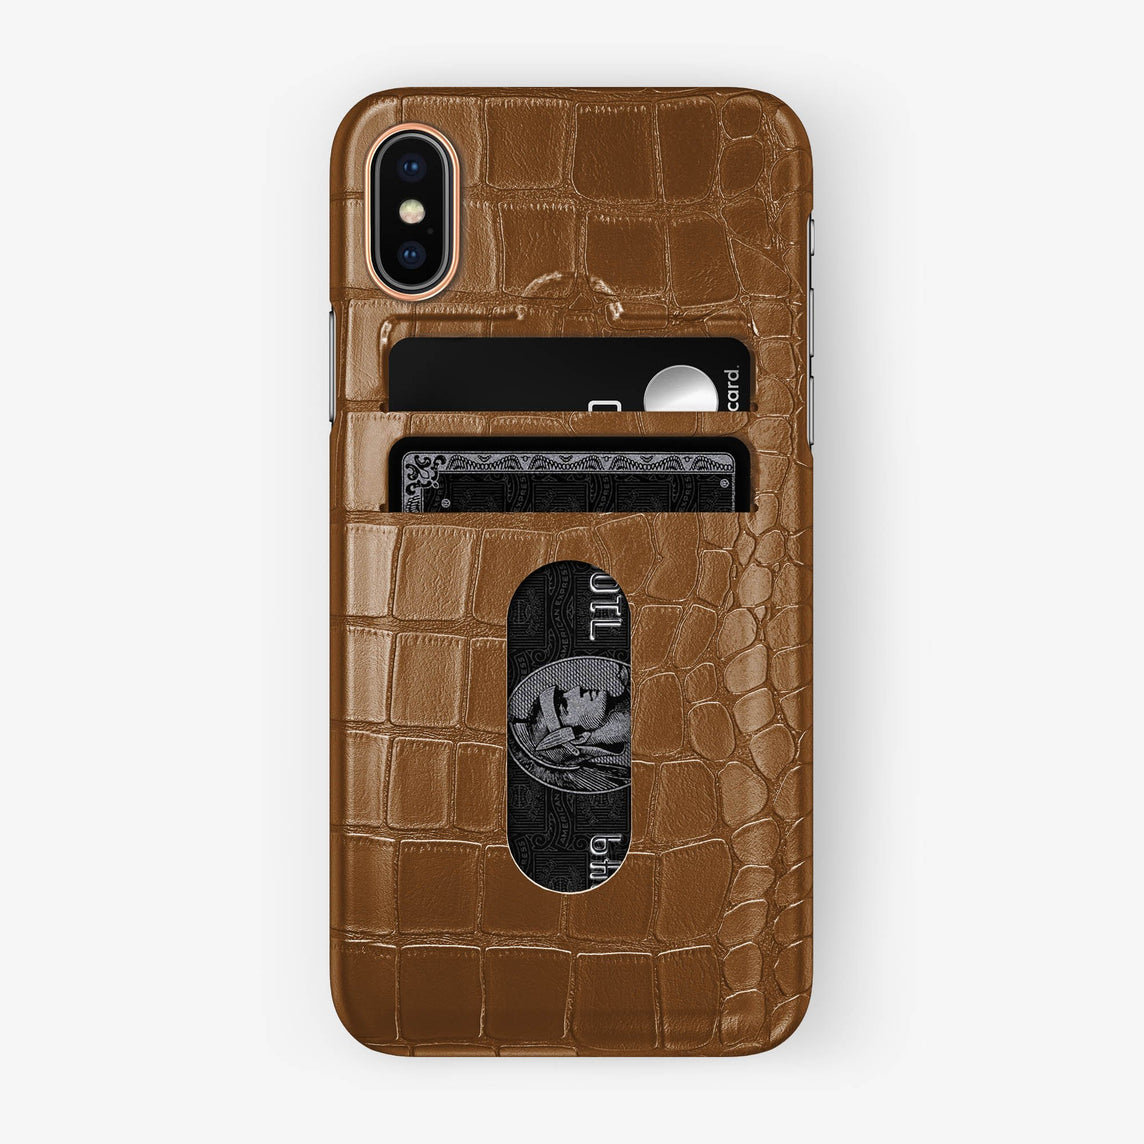 Alligator Card Holder Case iPhone X/Xs | Cognac - Rose Gold - Hadoro